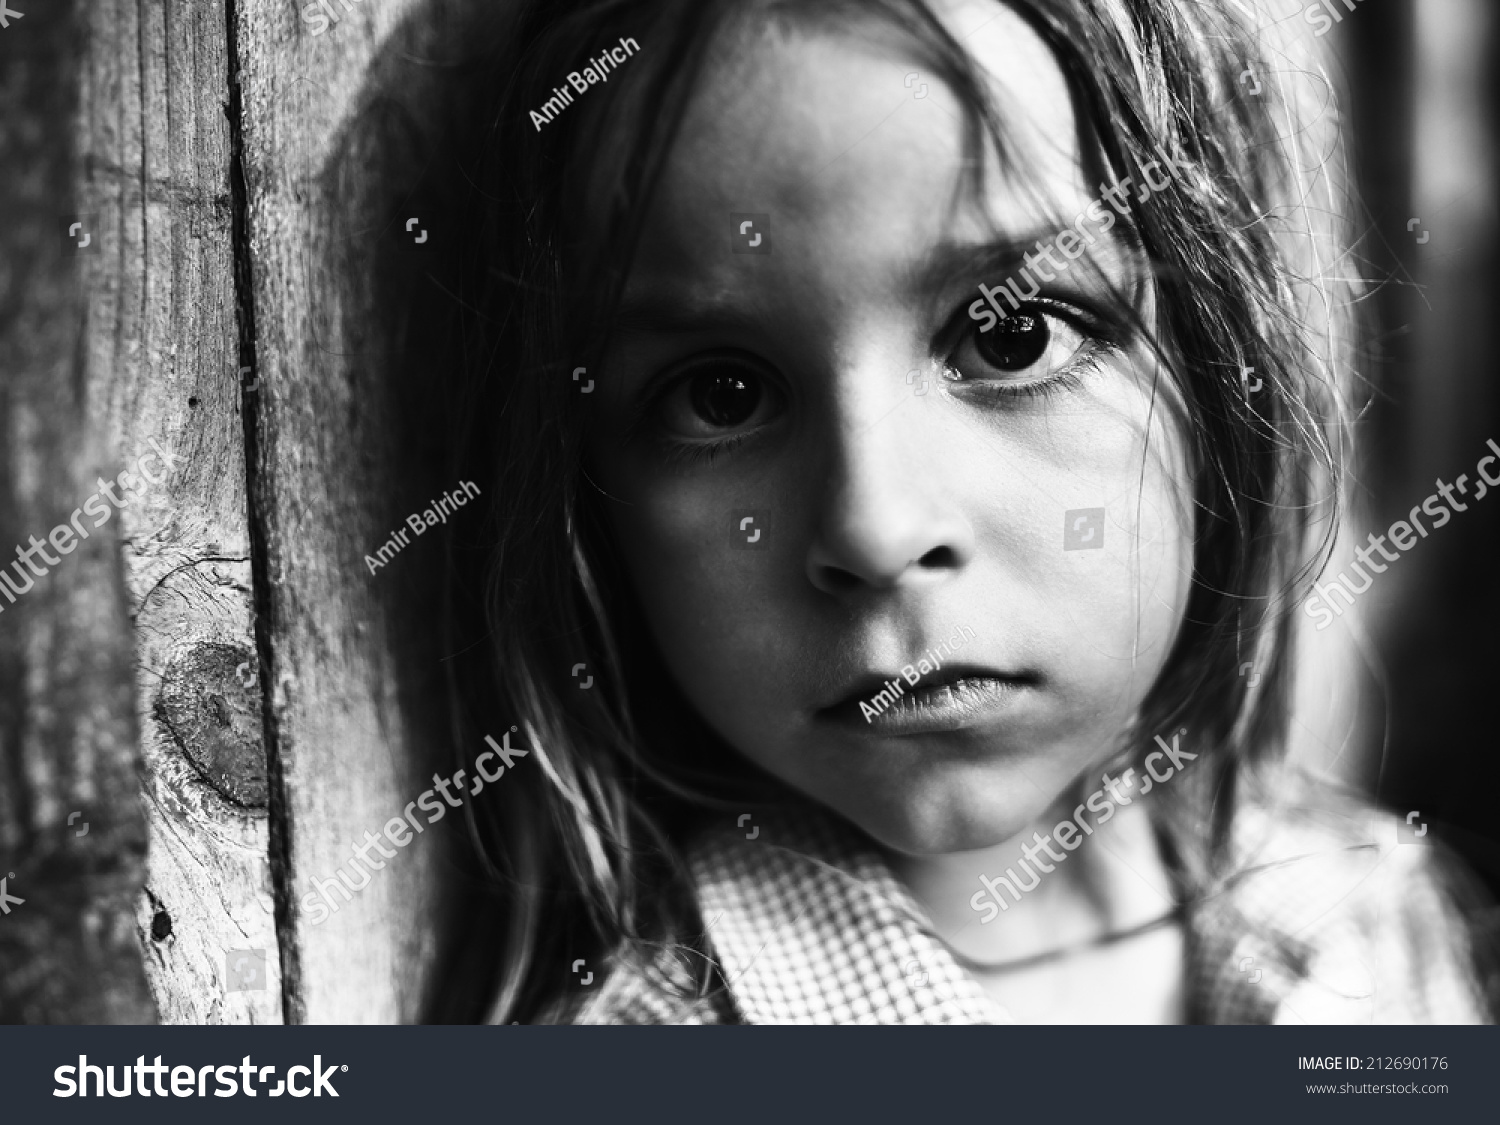 Child portraitboy with big black eyes black and white photography